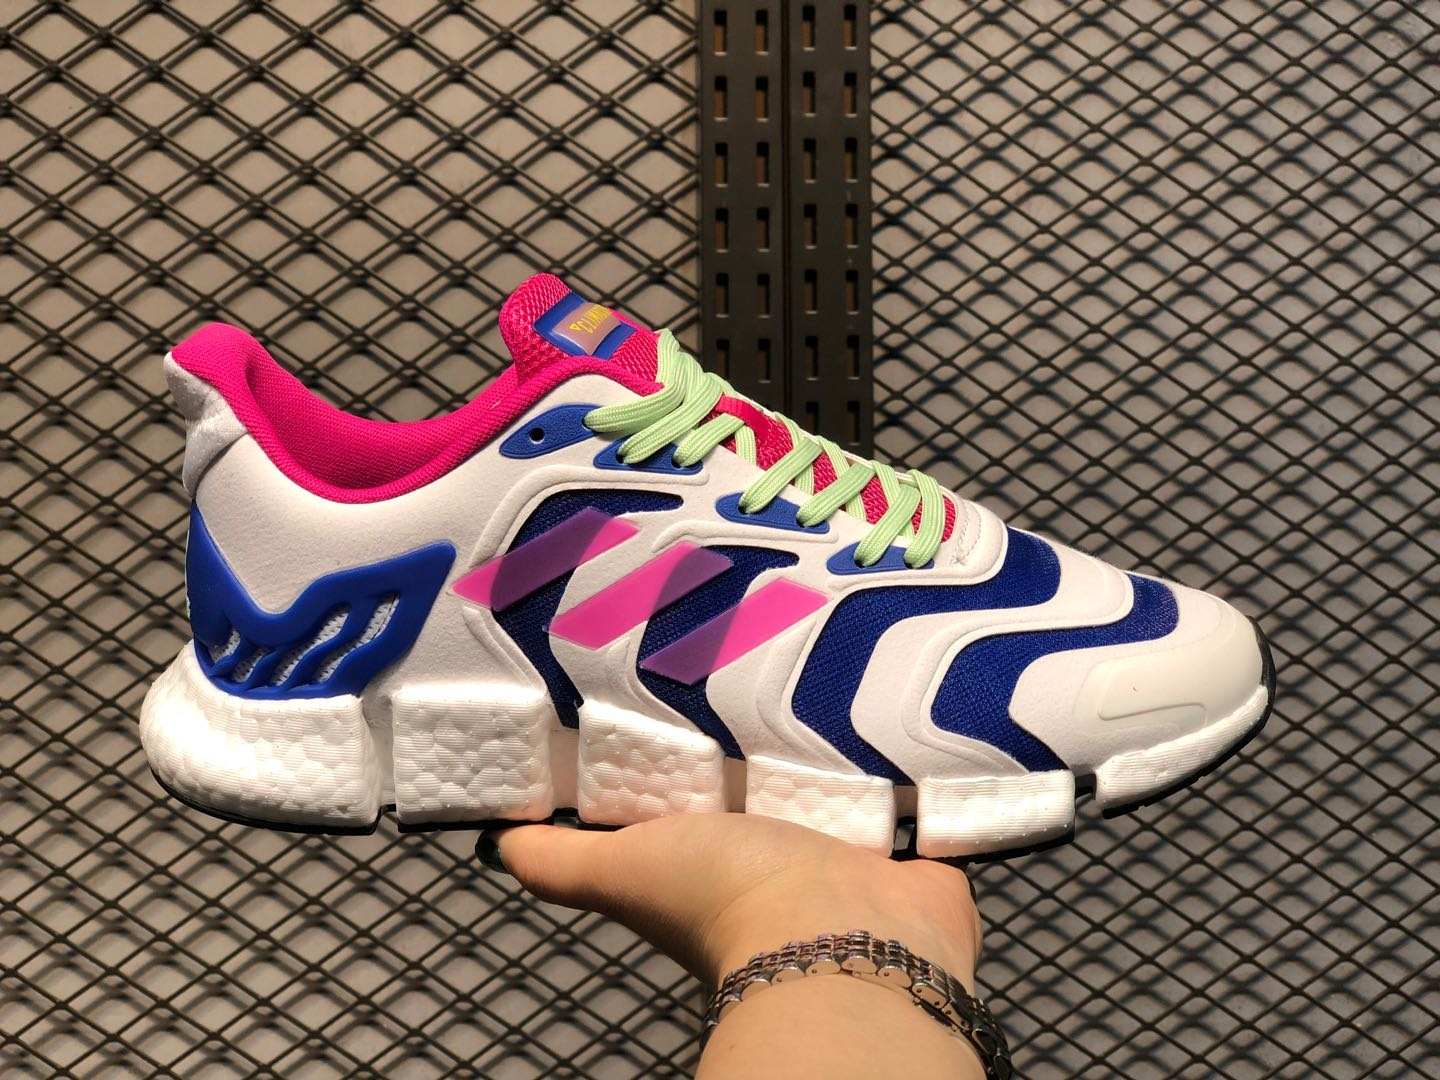 Adidas Climacool Cloud White/Thunder Blue-Red FX7847 Running Shoes